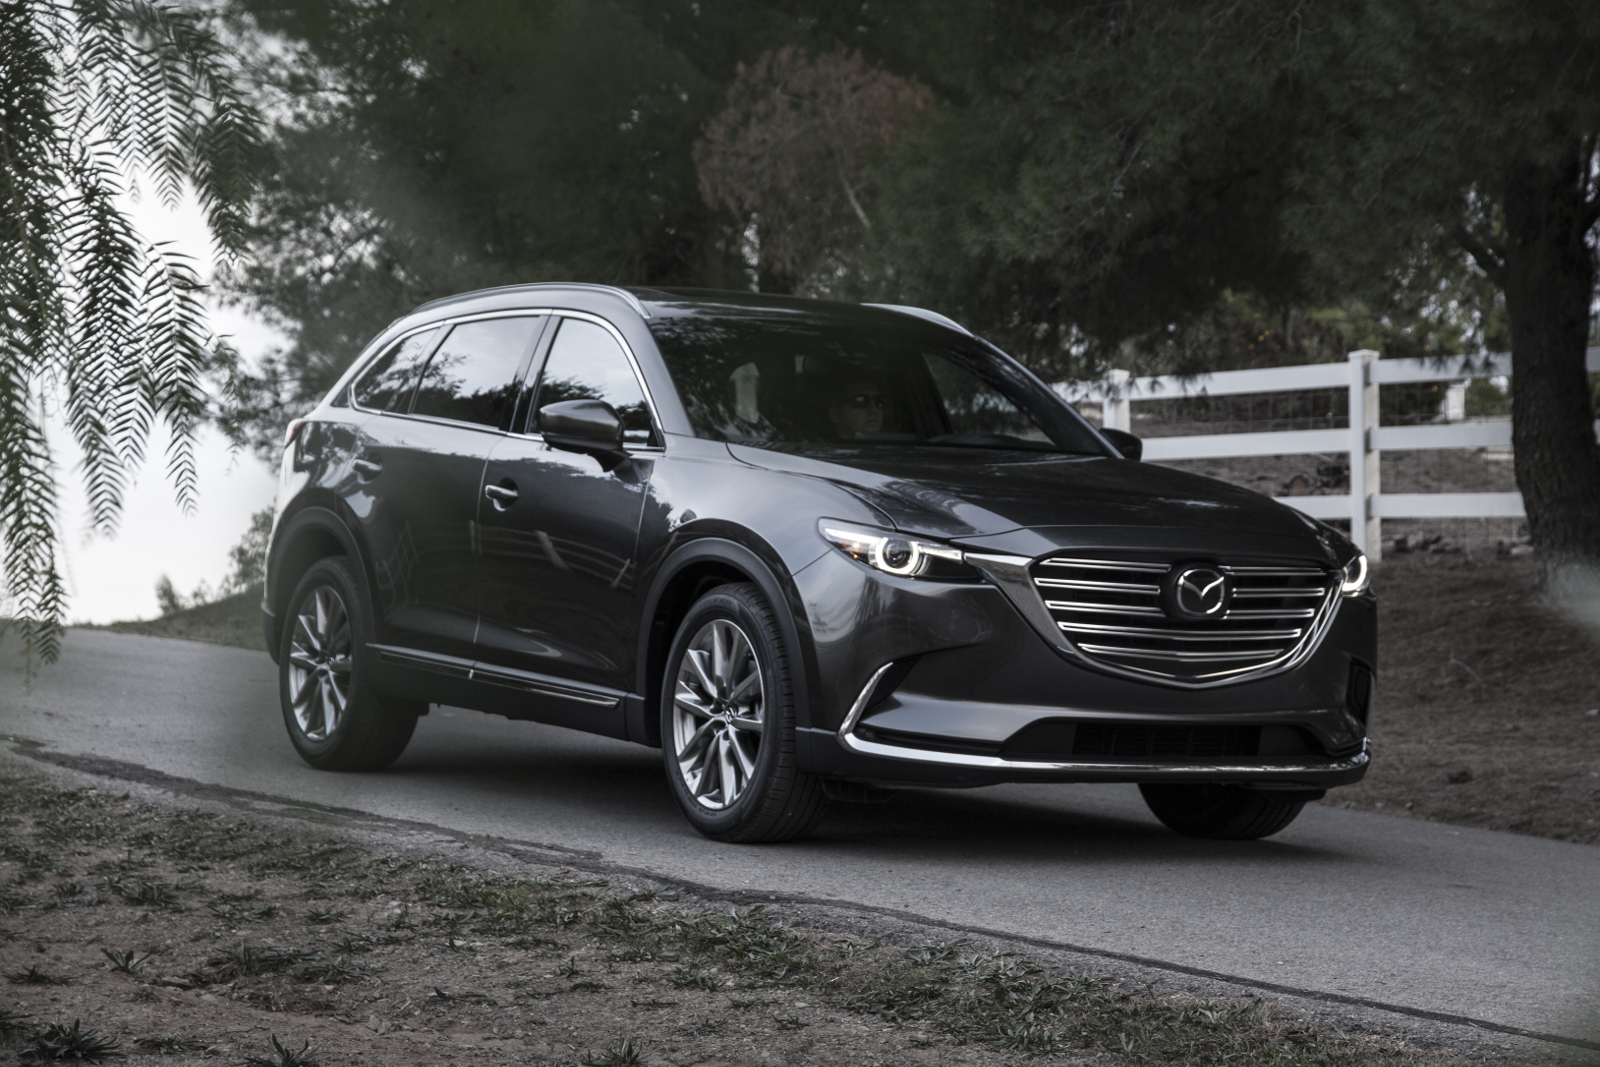 [Image: S0-Salon-de-Los-Angeles-Mazda-le-CX-9-of...366777.jpg]